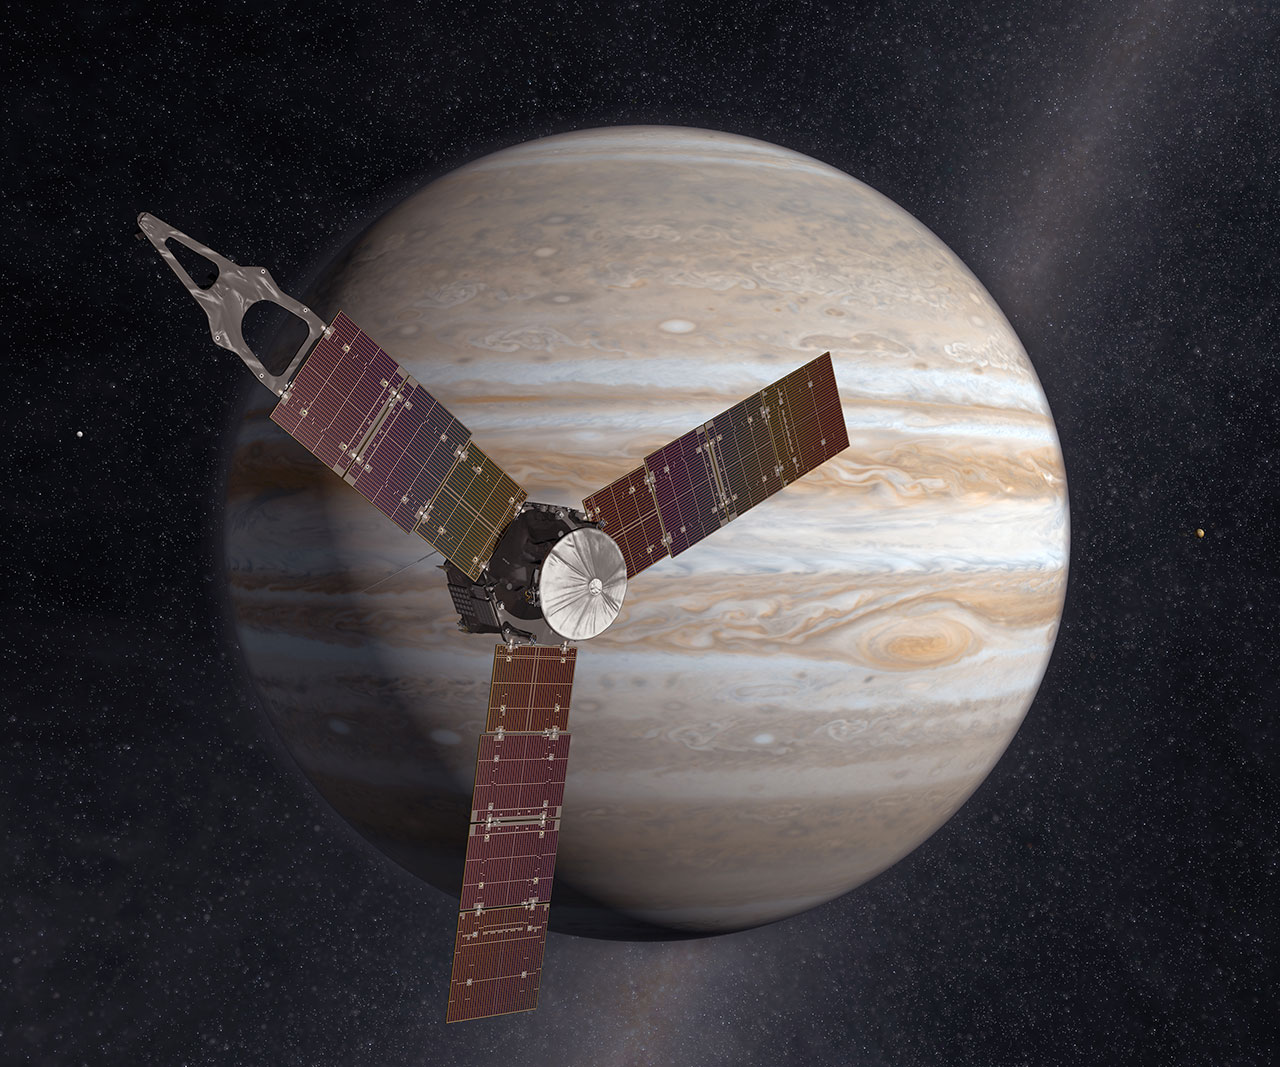 Juno's Jupiter Arrival Continues String of July 4 Spaceflight Milestones